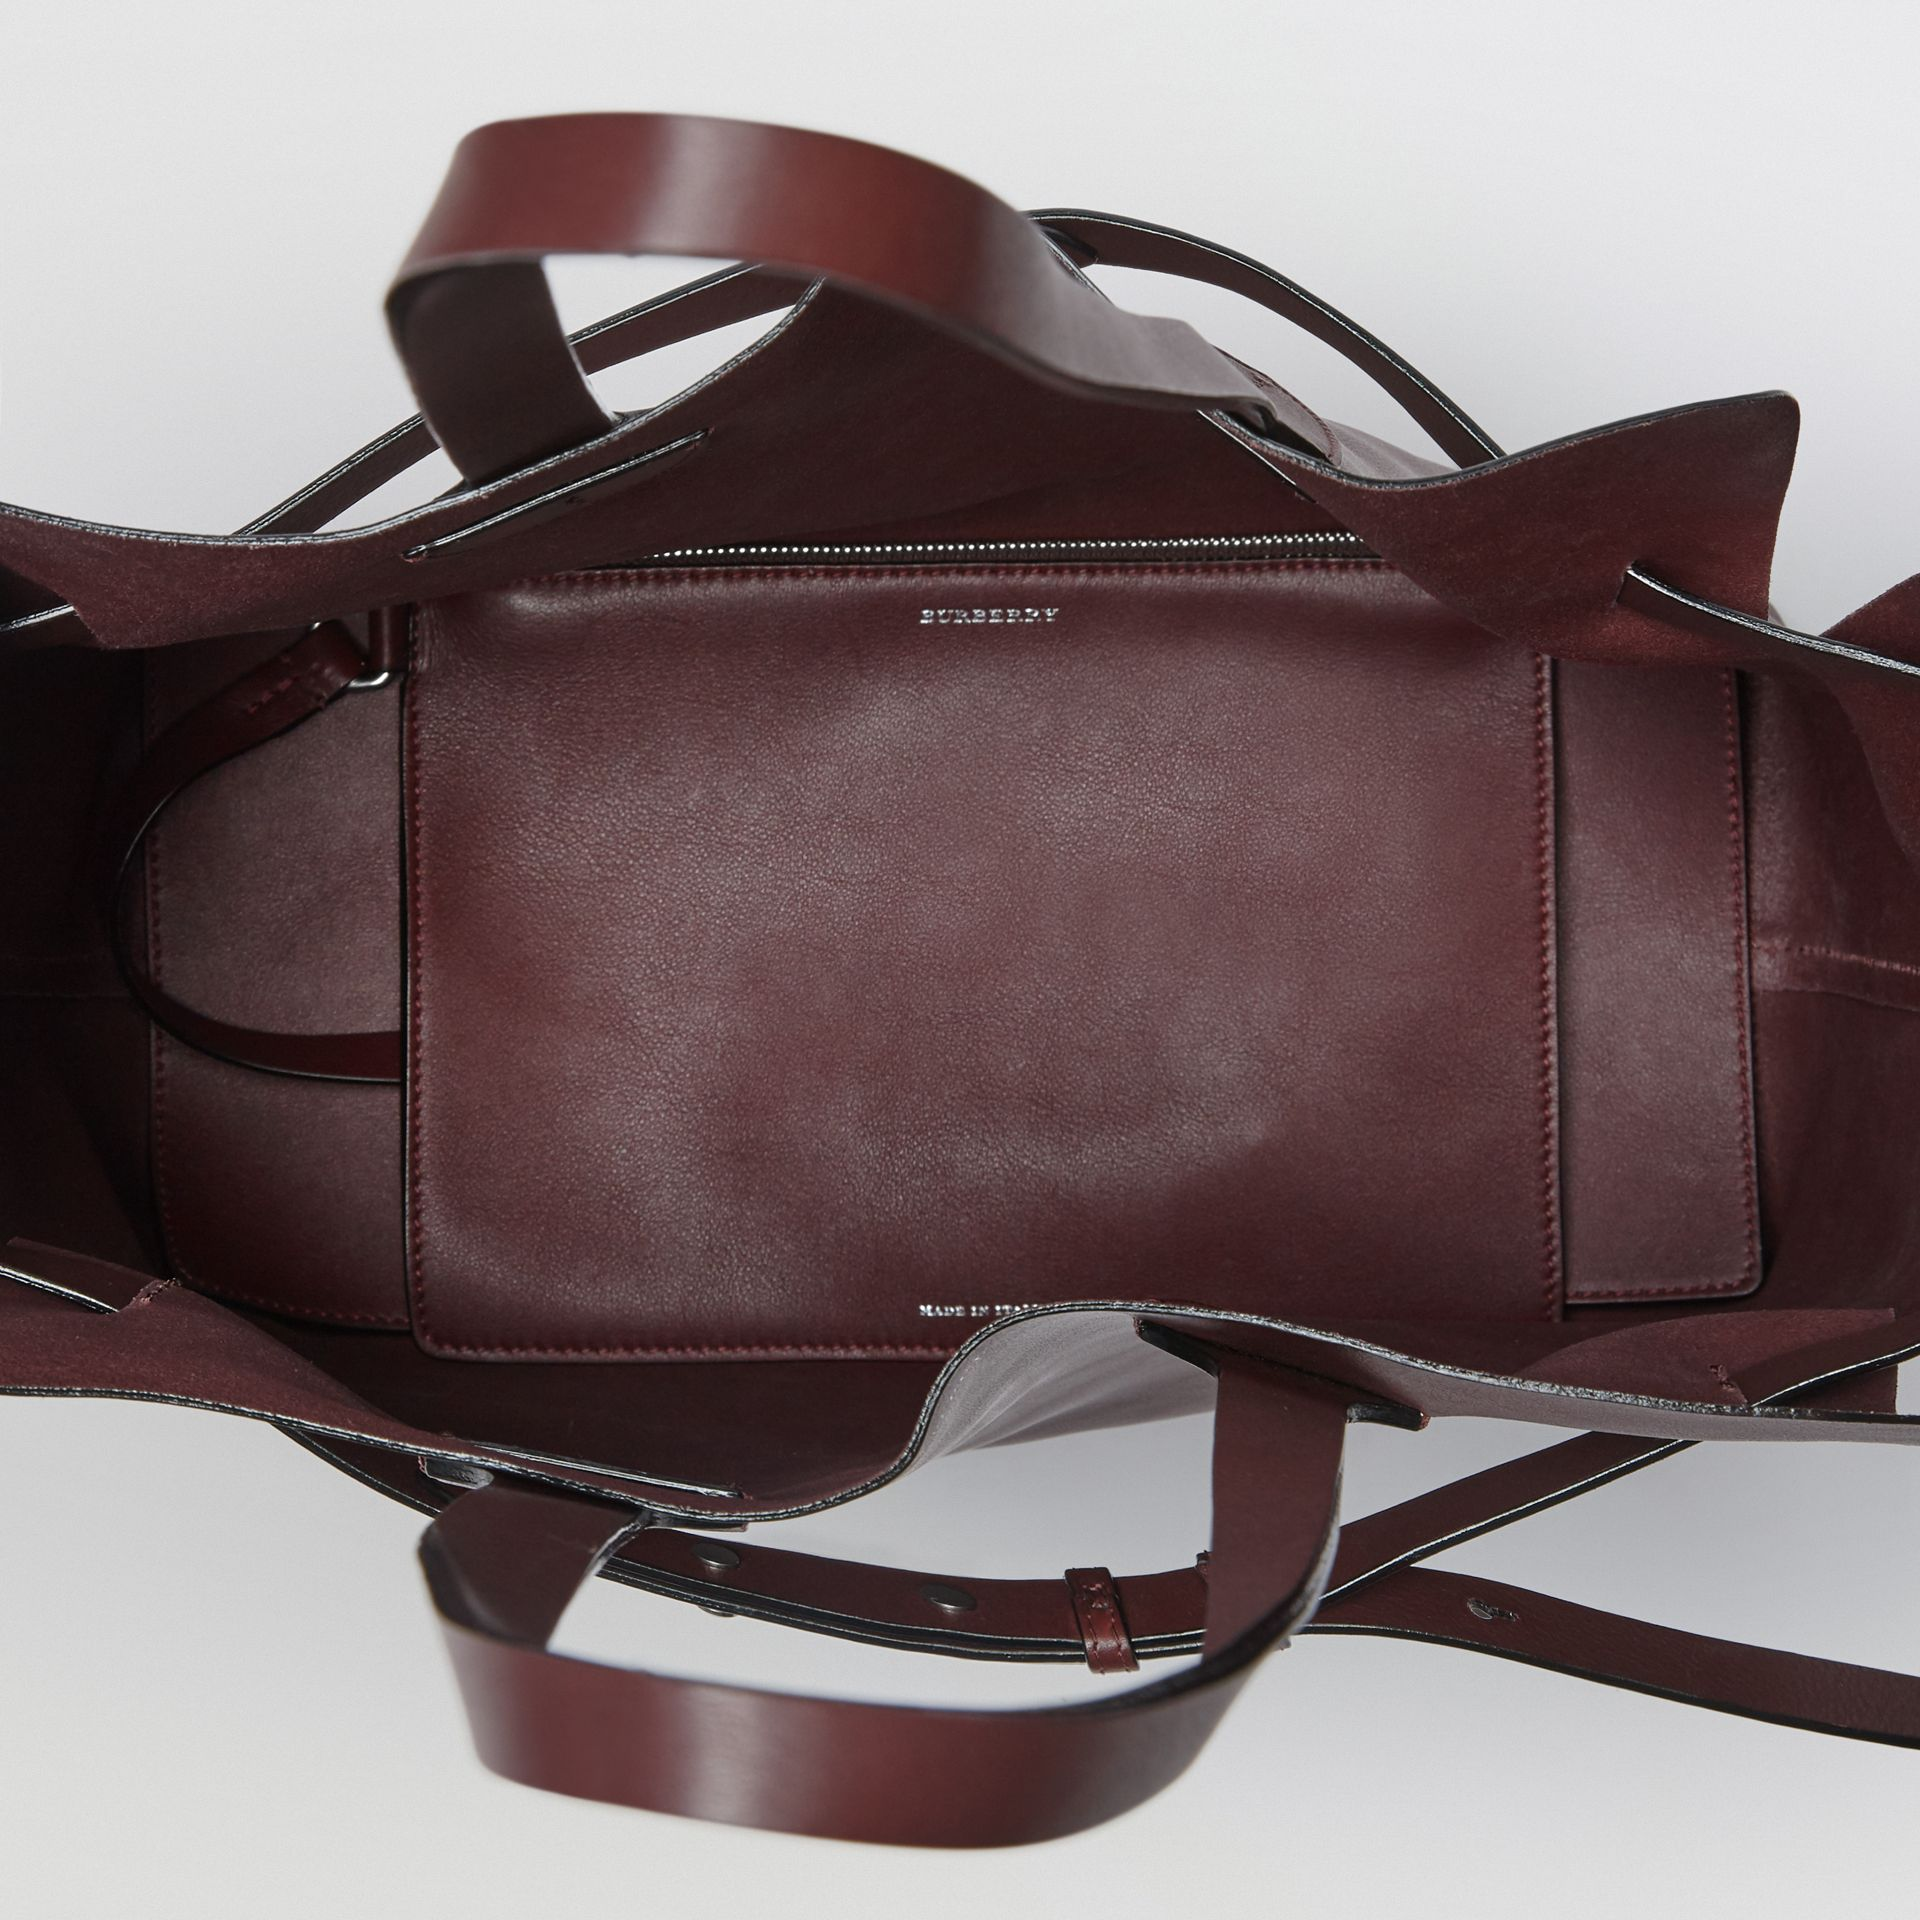 Sac The Belt moyen en cuir doux (Bordeaux Intense) - Femme | Burberry Canada - photo de la galerie 3